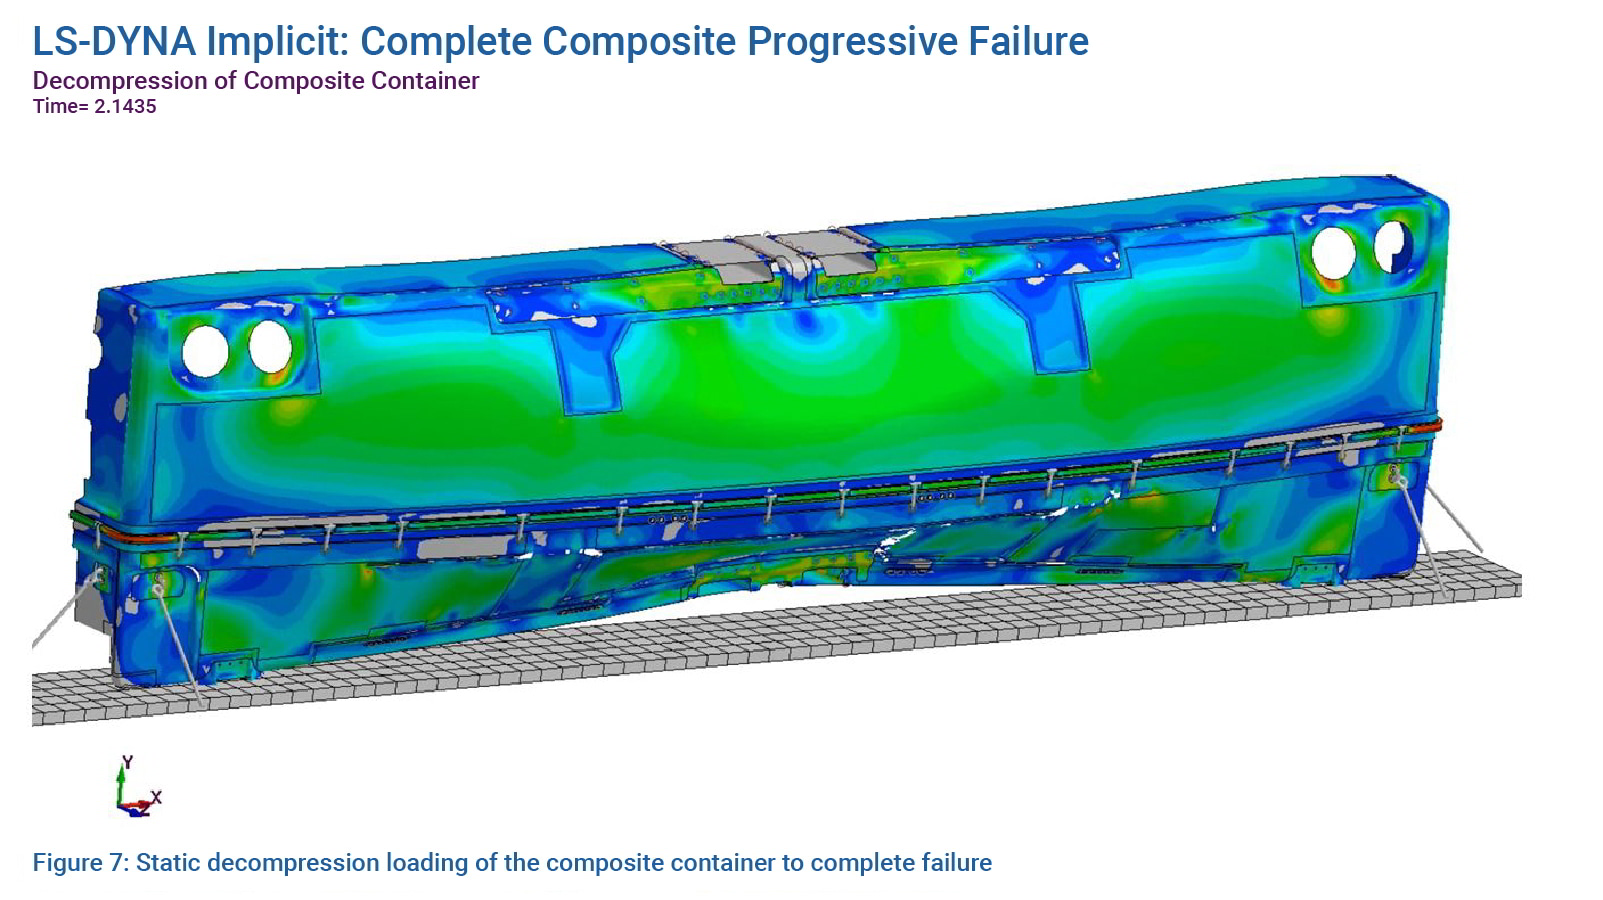 Figure 7: Static decompression loading of the composite container to complete failure